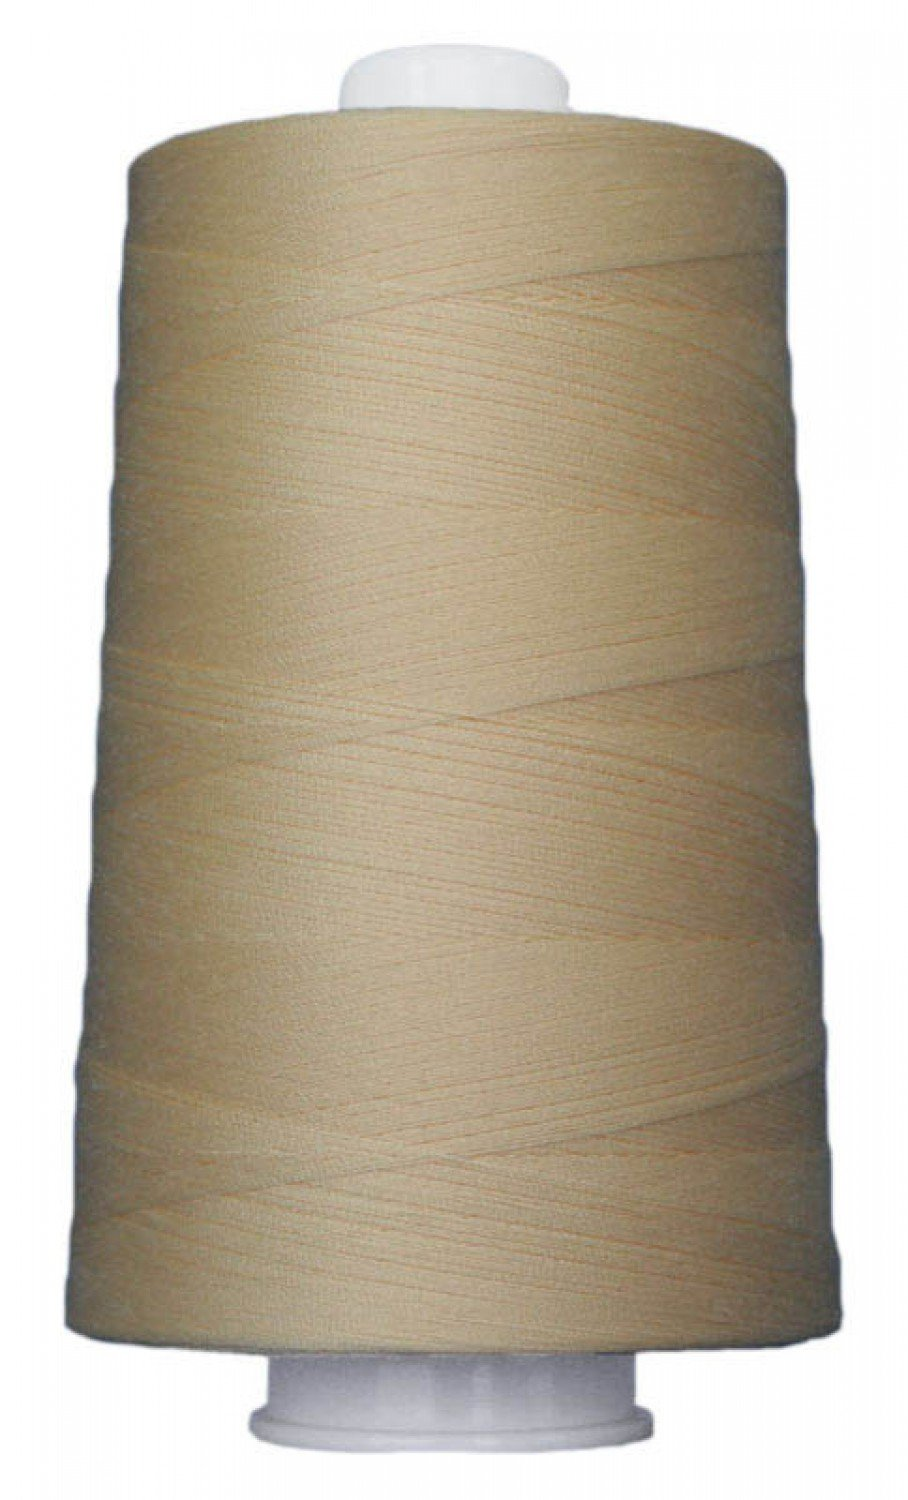 OMNI Polyester Thread 40 wt 6000 yds 3049 Cheesecake by Superior